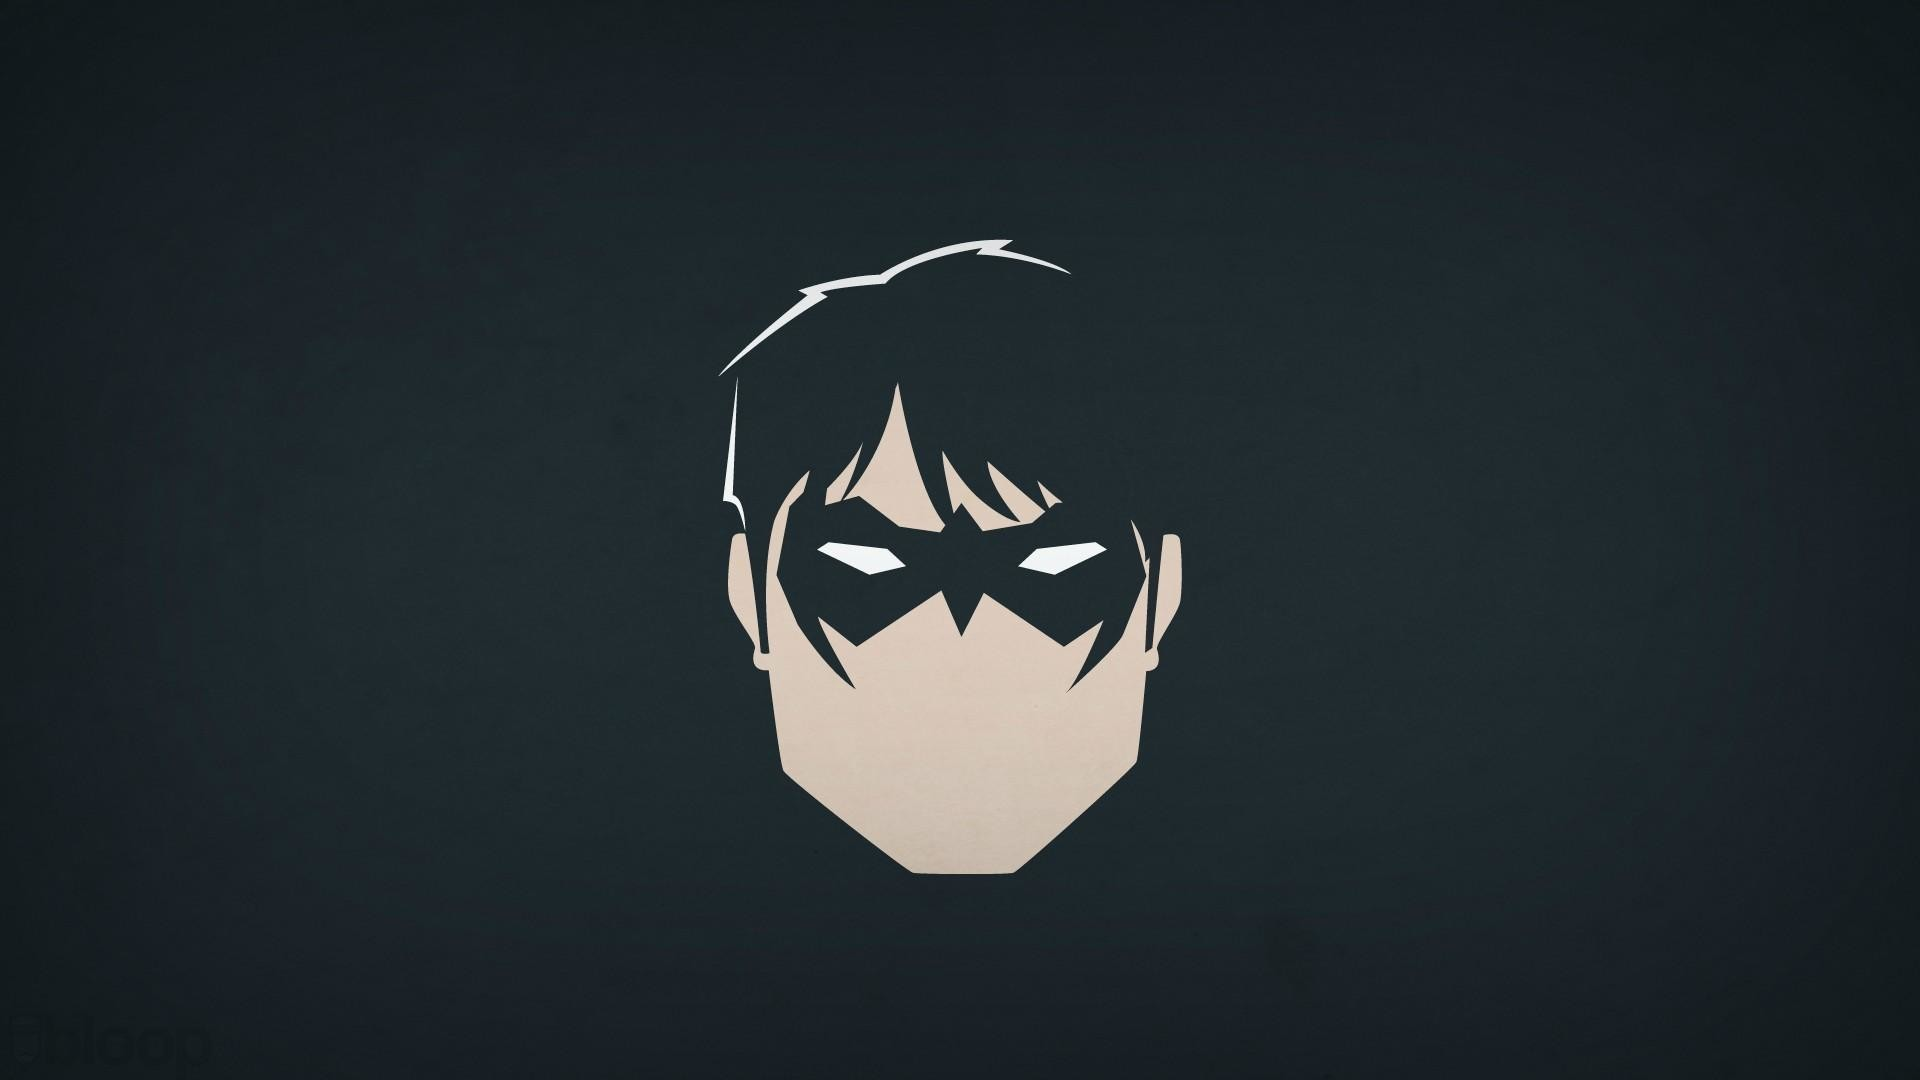 Res: 1920x1080, Nightwing Wallpaper Mobile